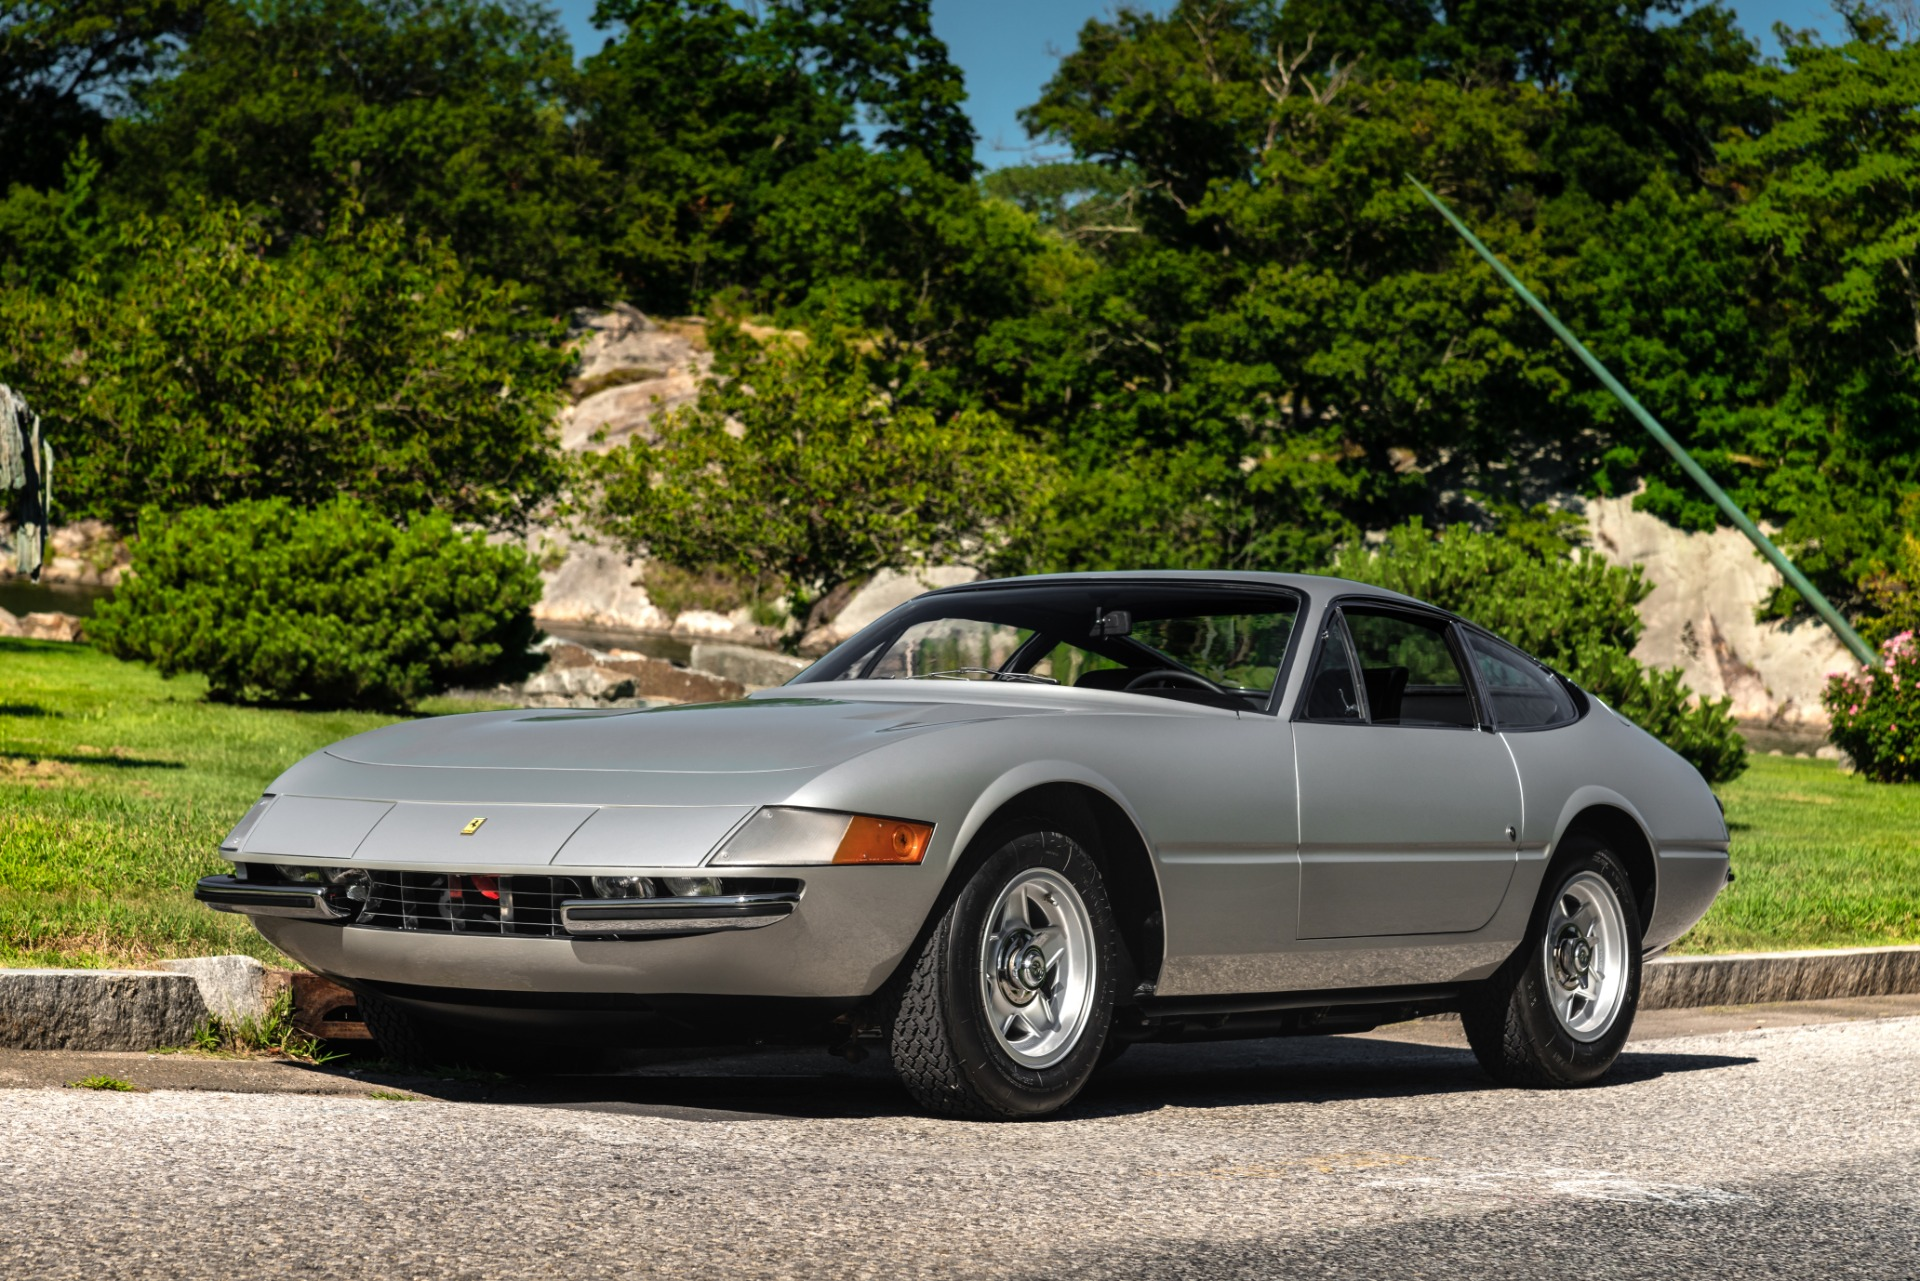 Used 1971 Ferrari 365 GTB/4 Daytona for sale Sold at Alfa Romeo of Greenwich in Greenwich CT 06830 1